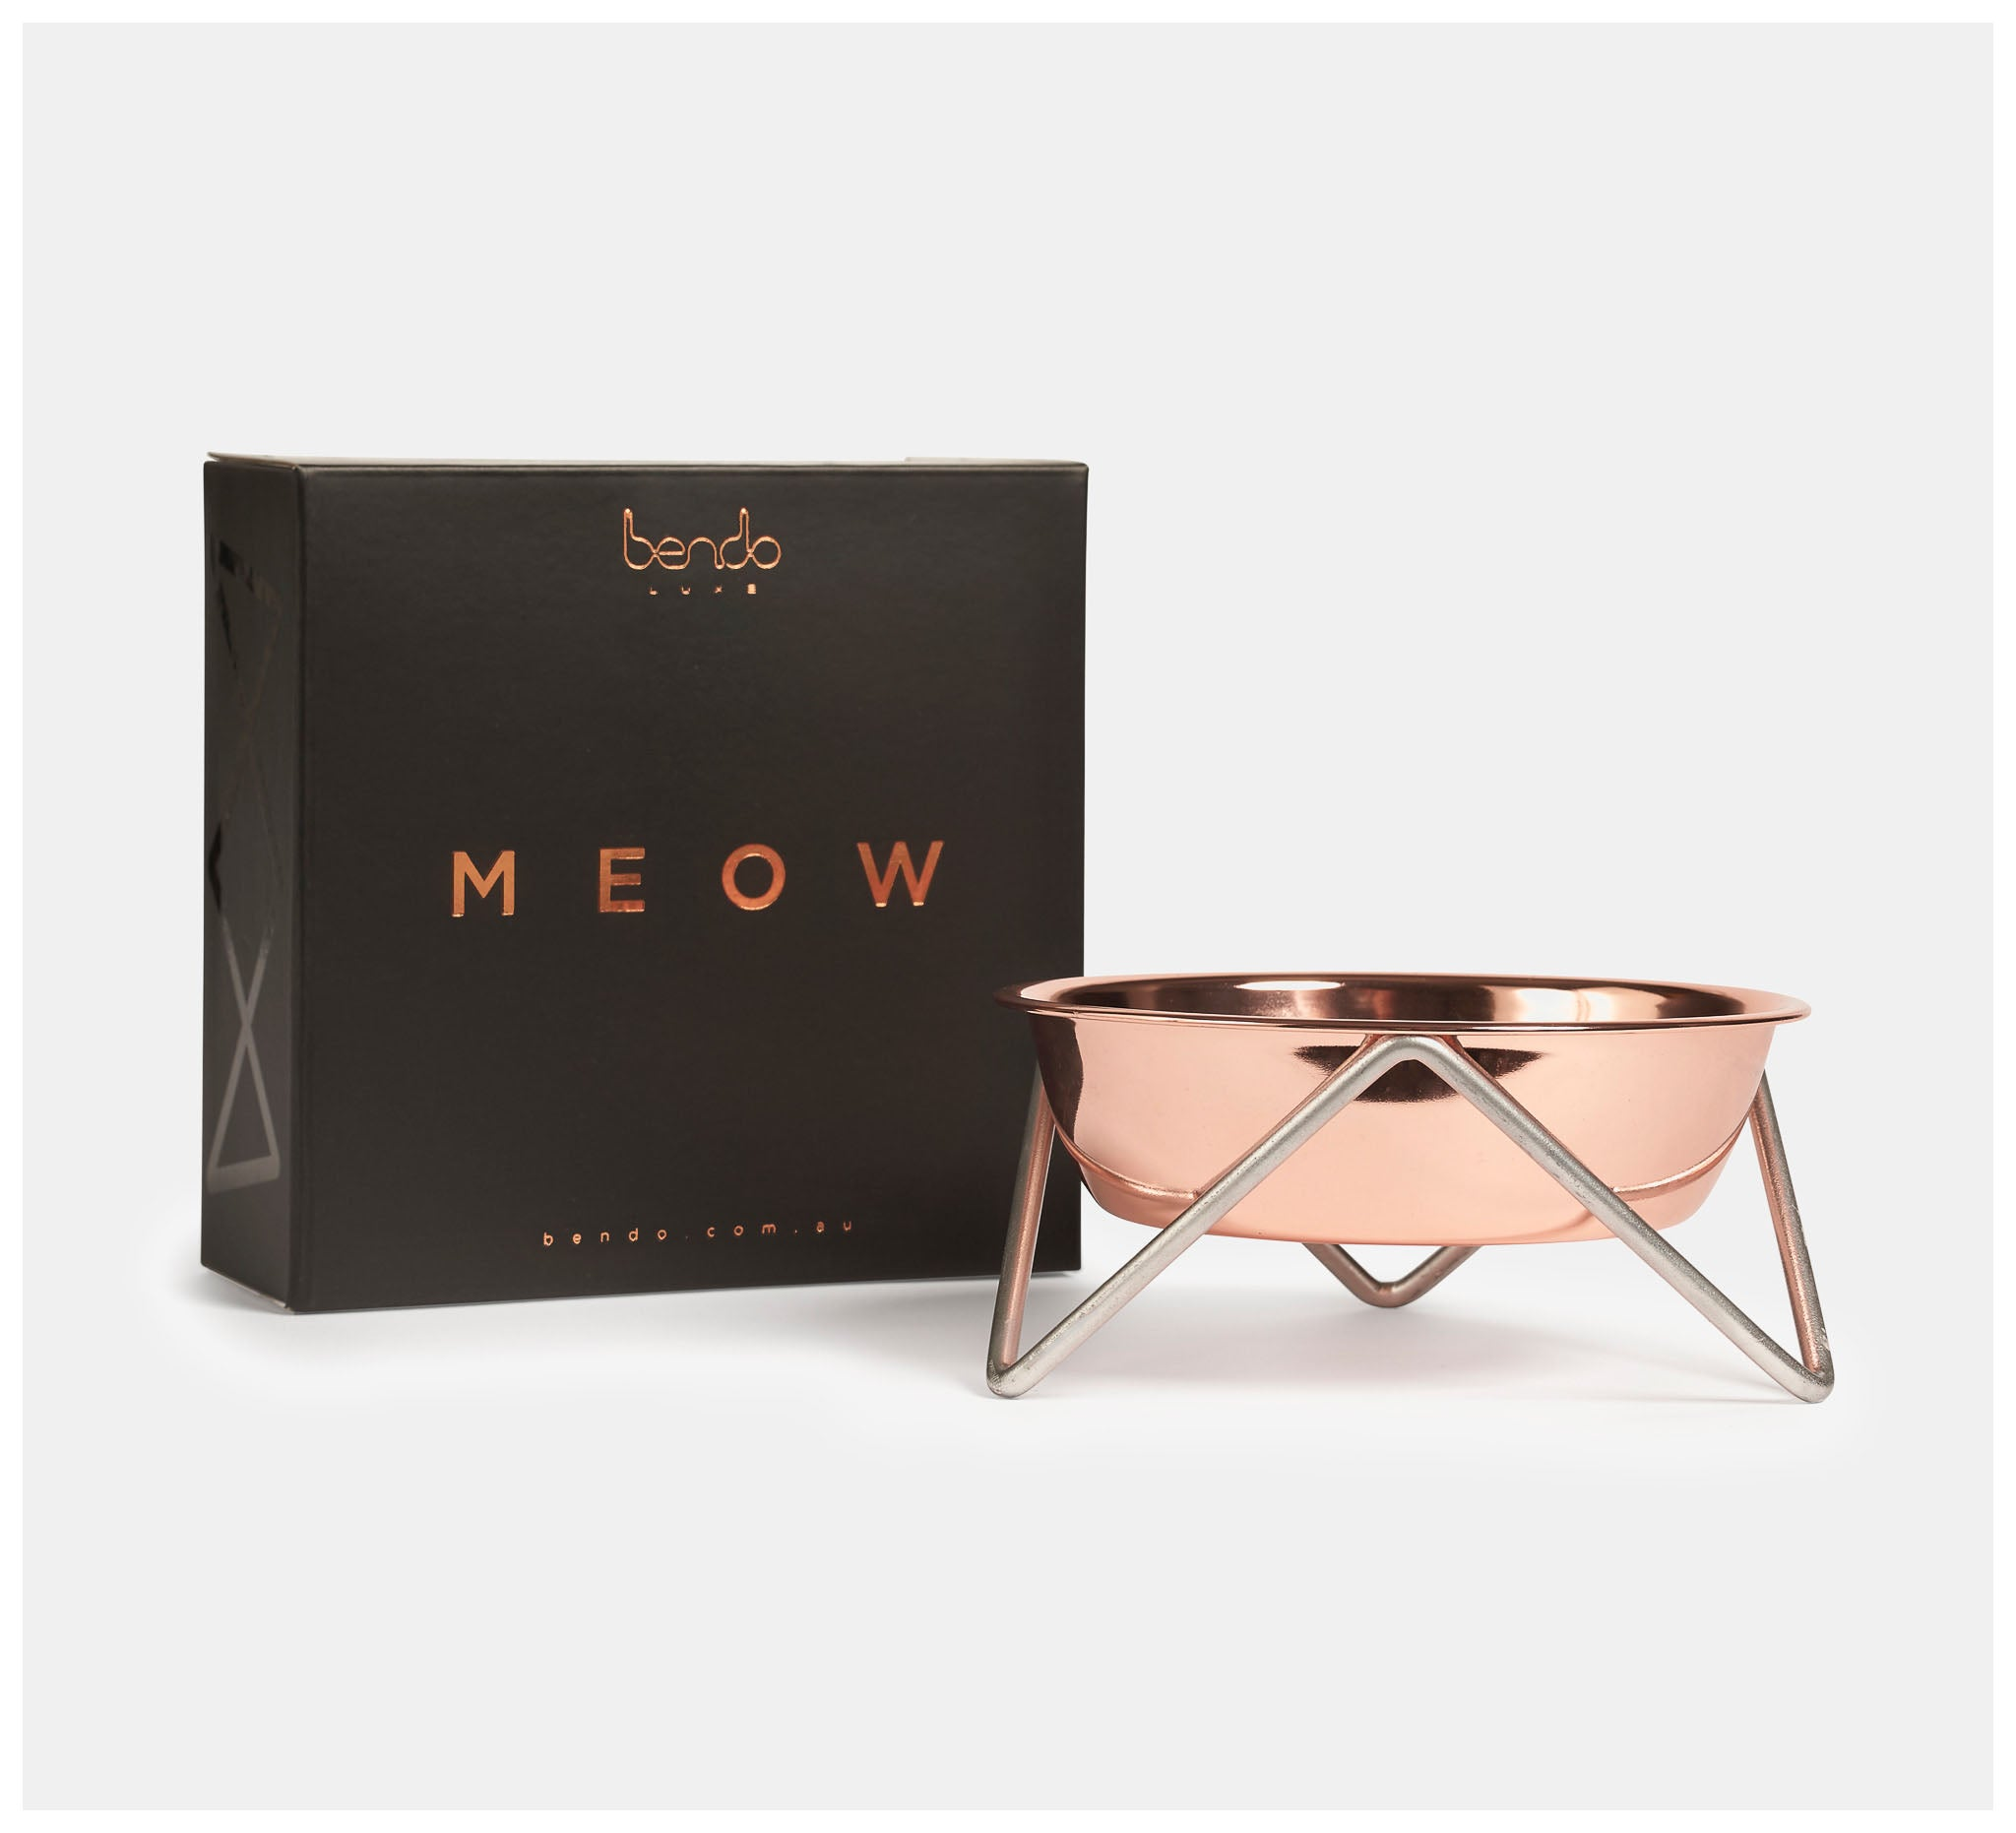 Bendo - Meow Copper on Chrome